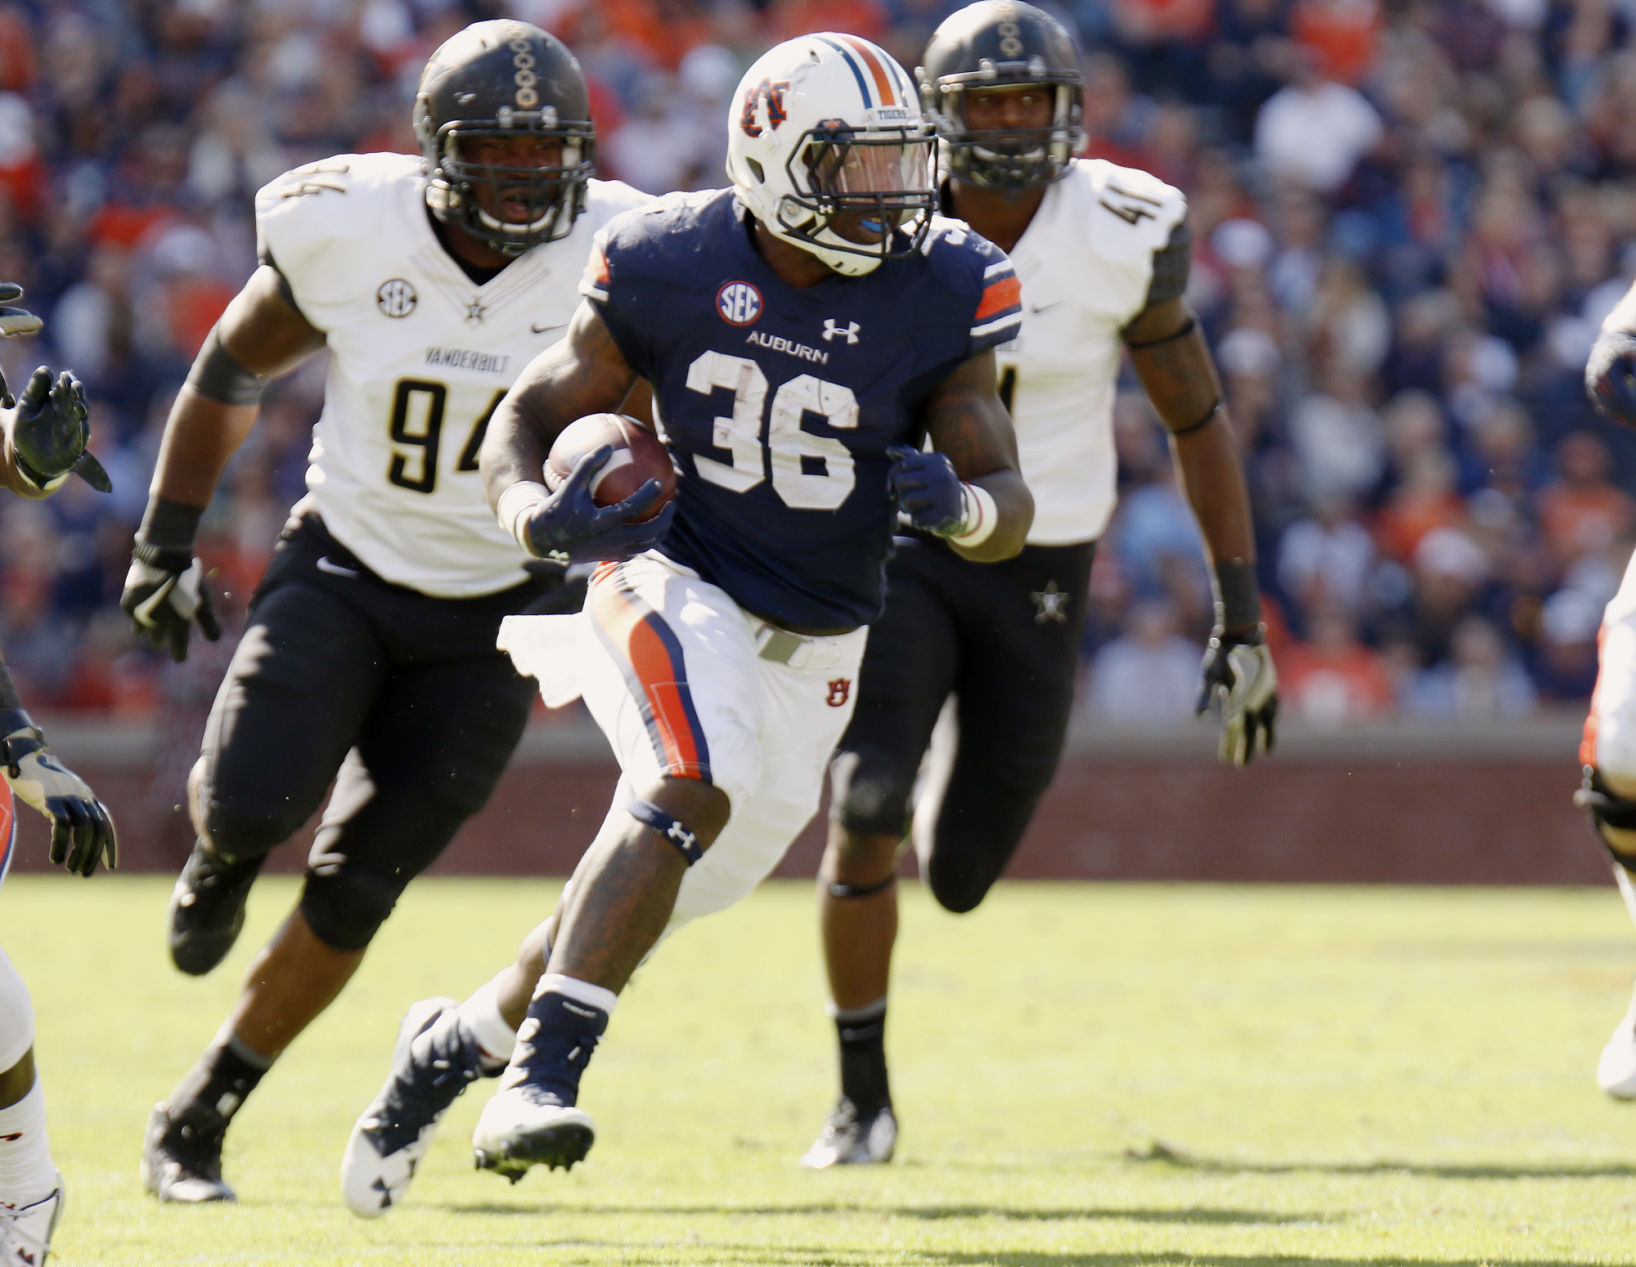 Auburn's Kamryn Pettway named to Doak Walker Award watch list